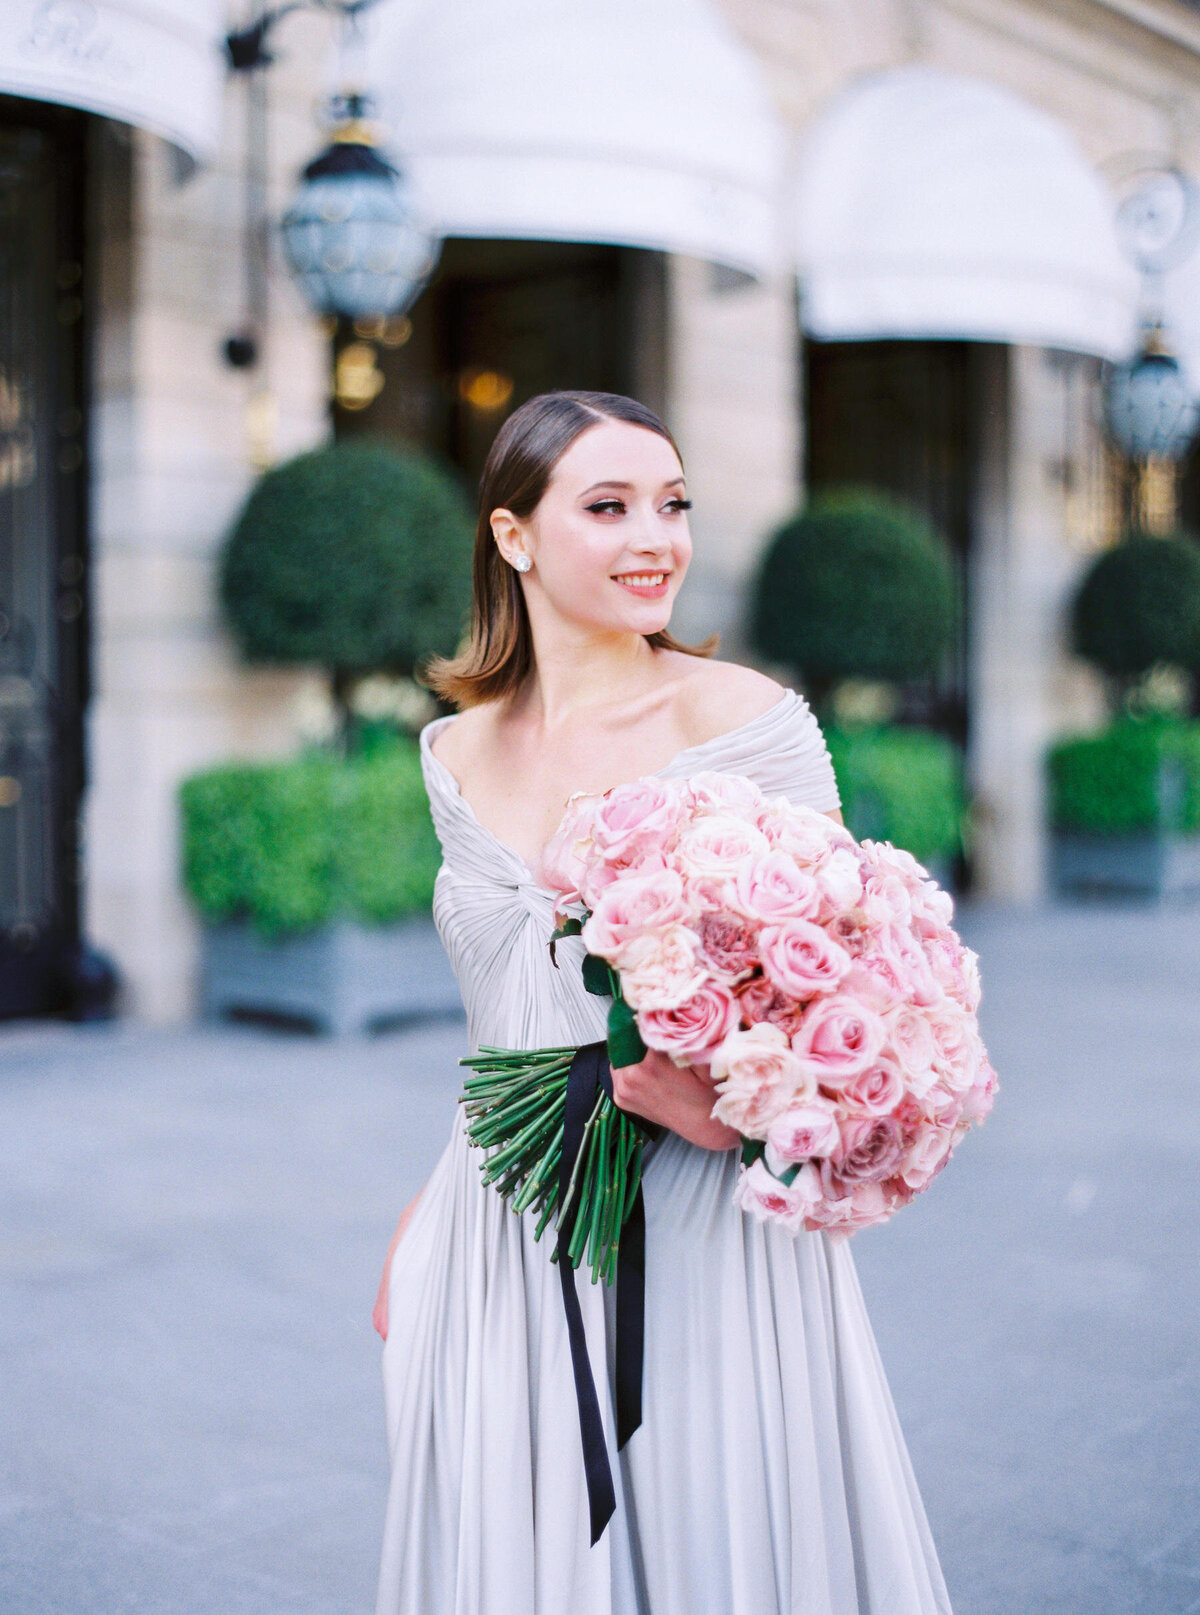 wedding-photographer-in-ritz-paris (14 of 29)